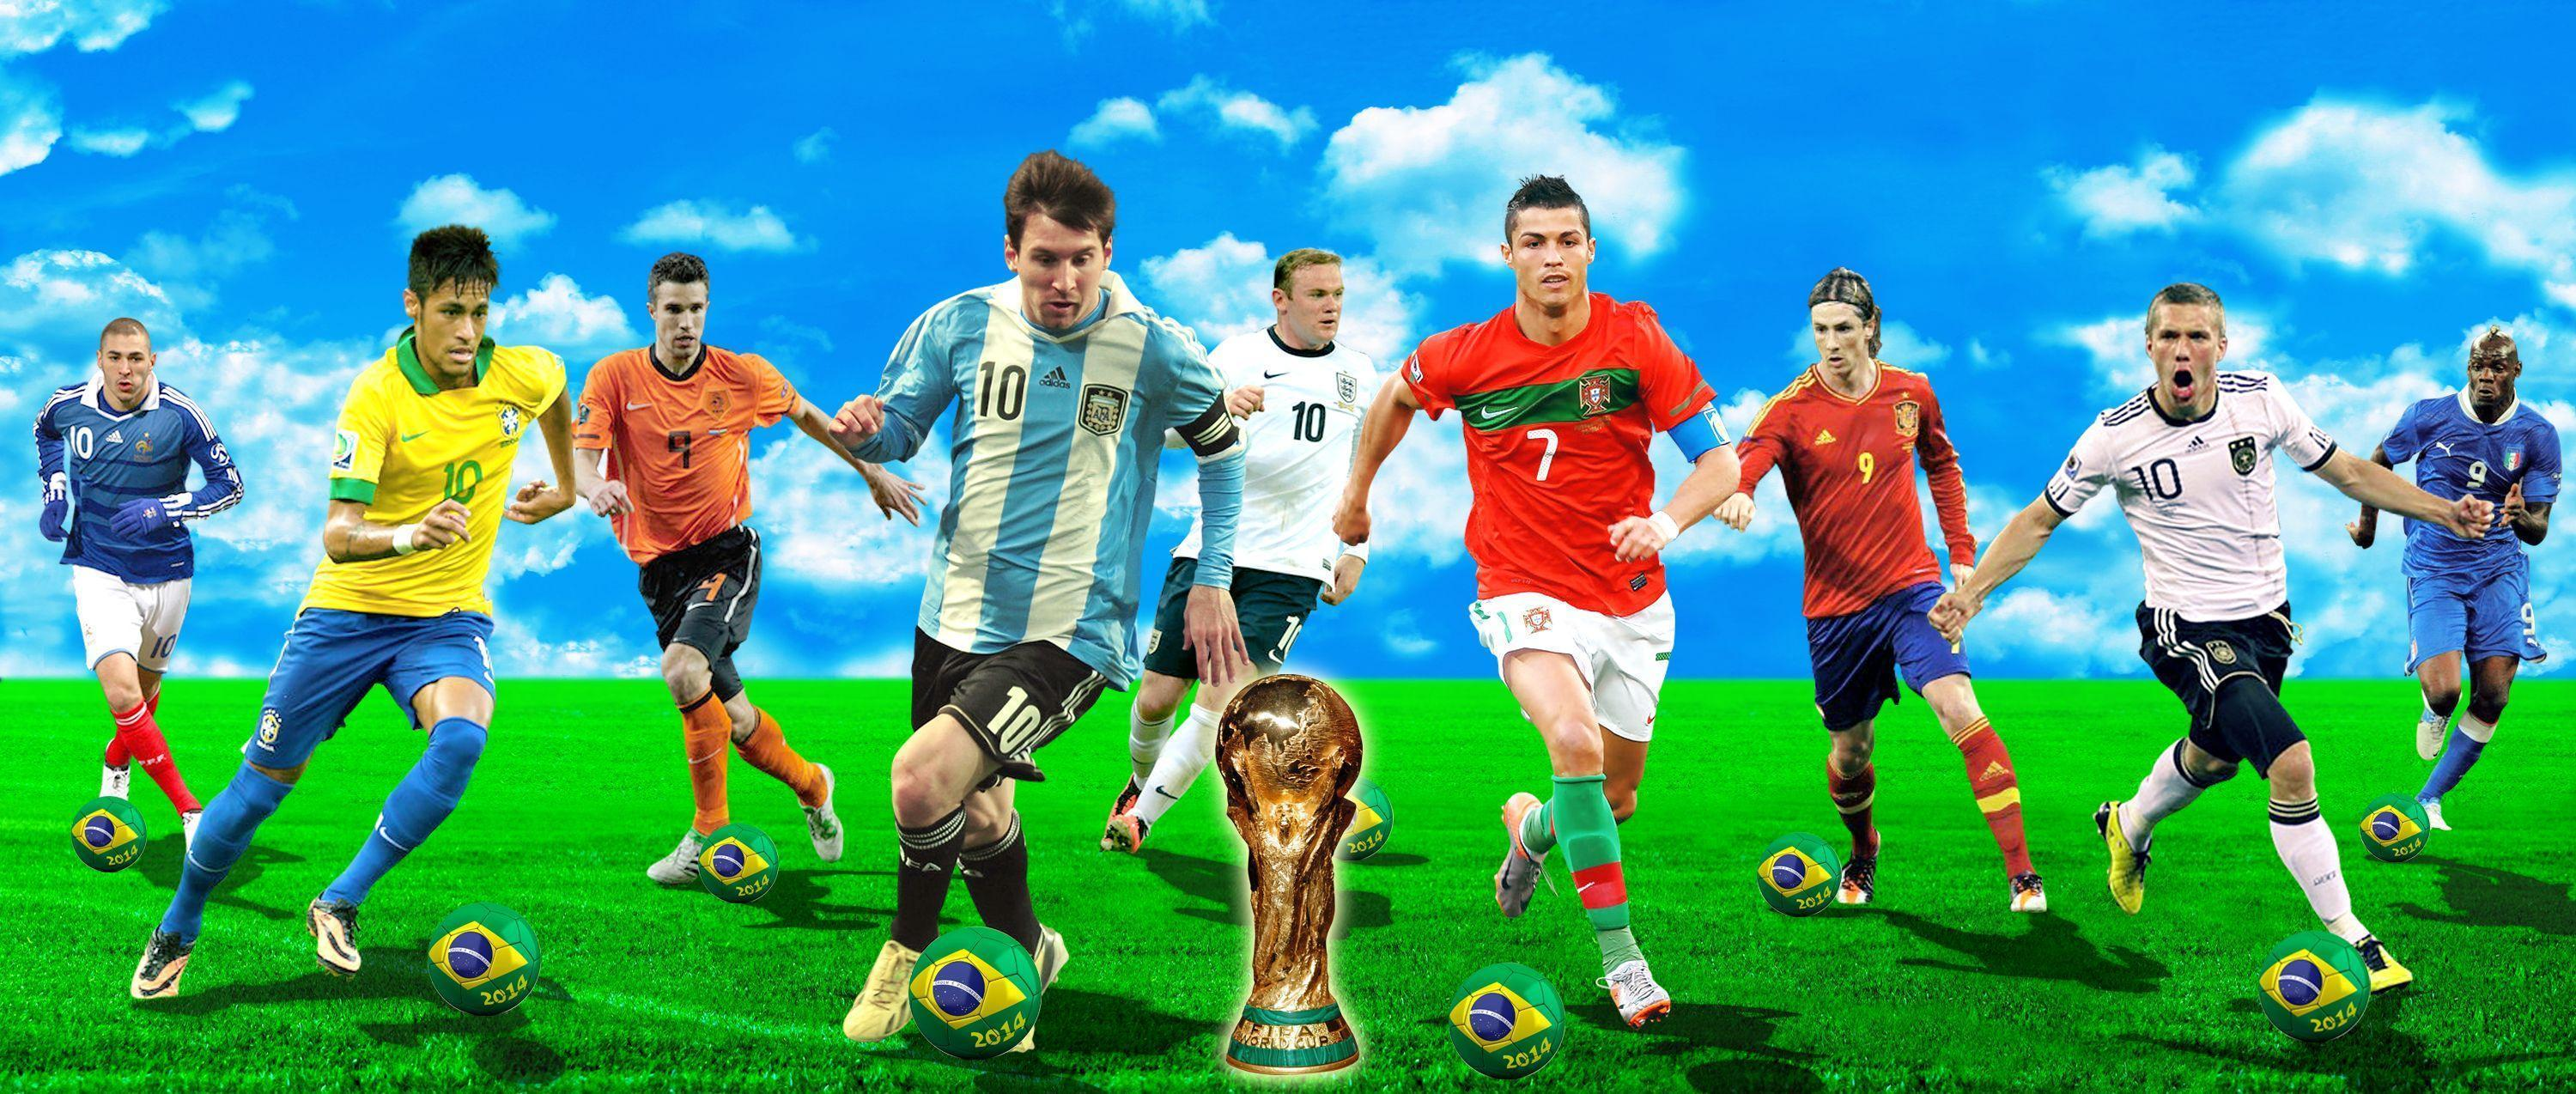 Best Soccer Players Wallpaper - WallpaperSafari